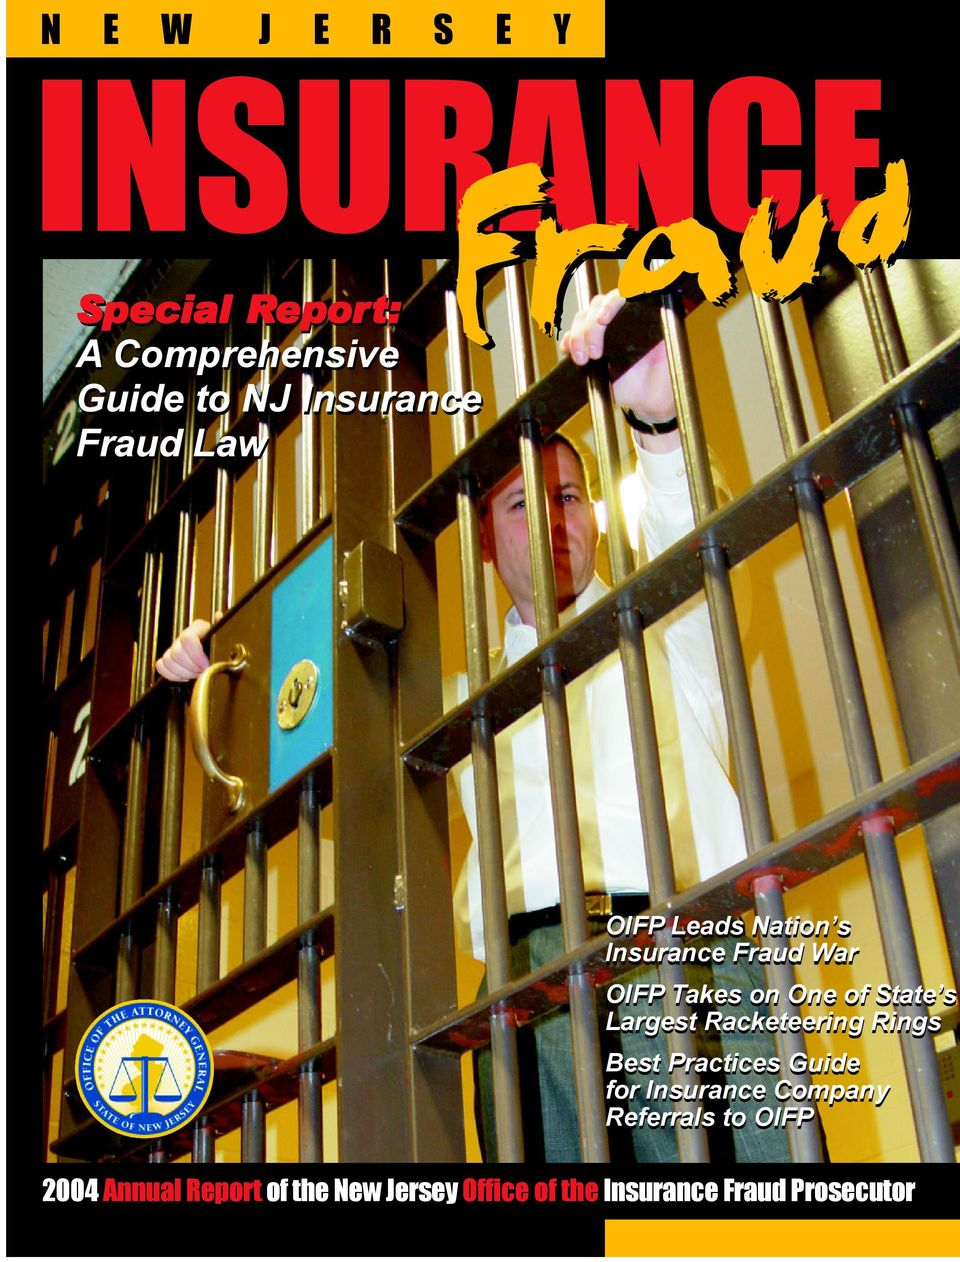 One of State s Largest Racketeering Rings Best Practices Guide for Insurance Company